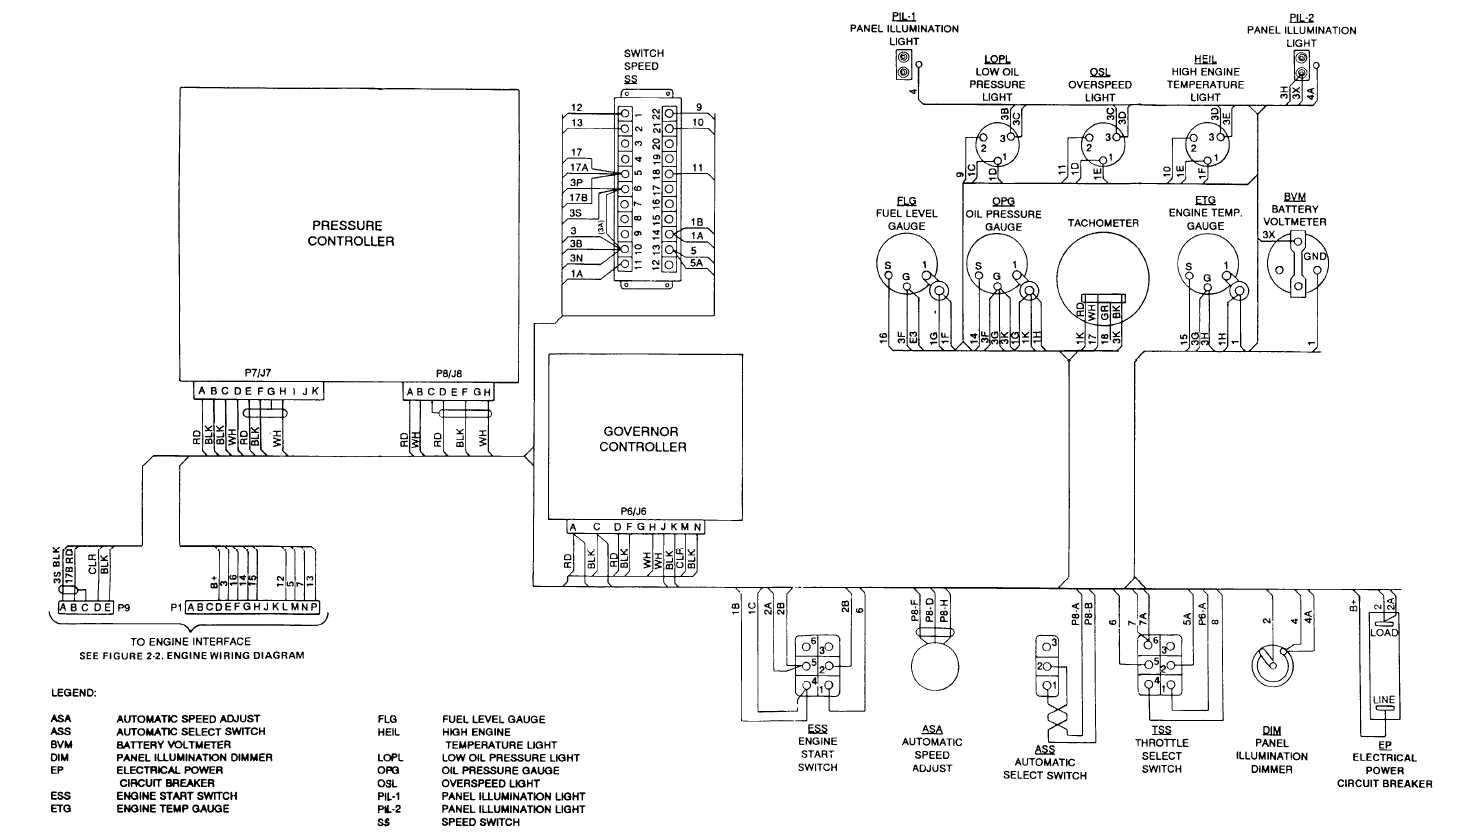 Figure 2 1 Control Panel Wiring Diagram Sheet 1 Of 4